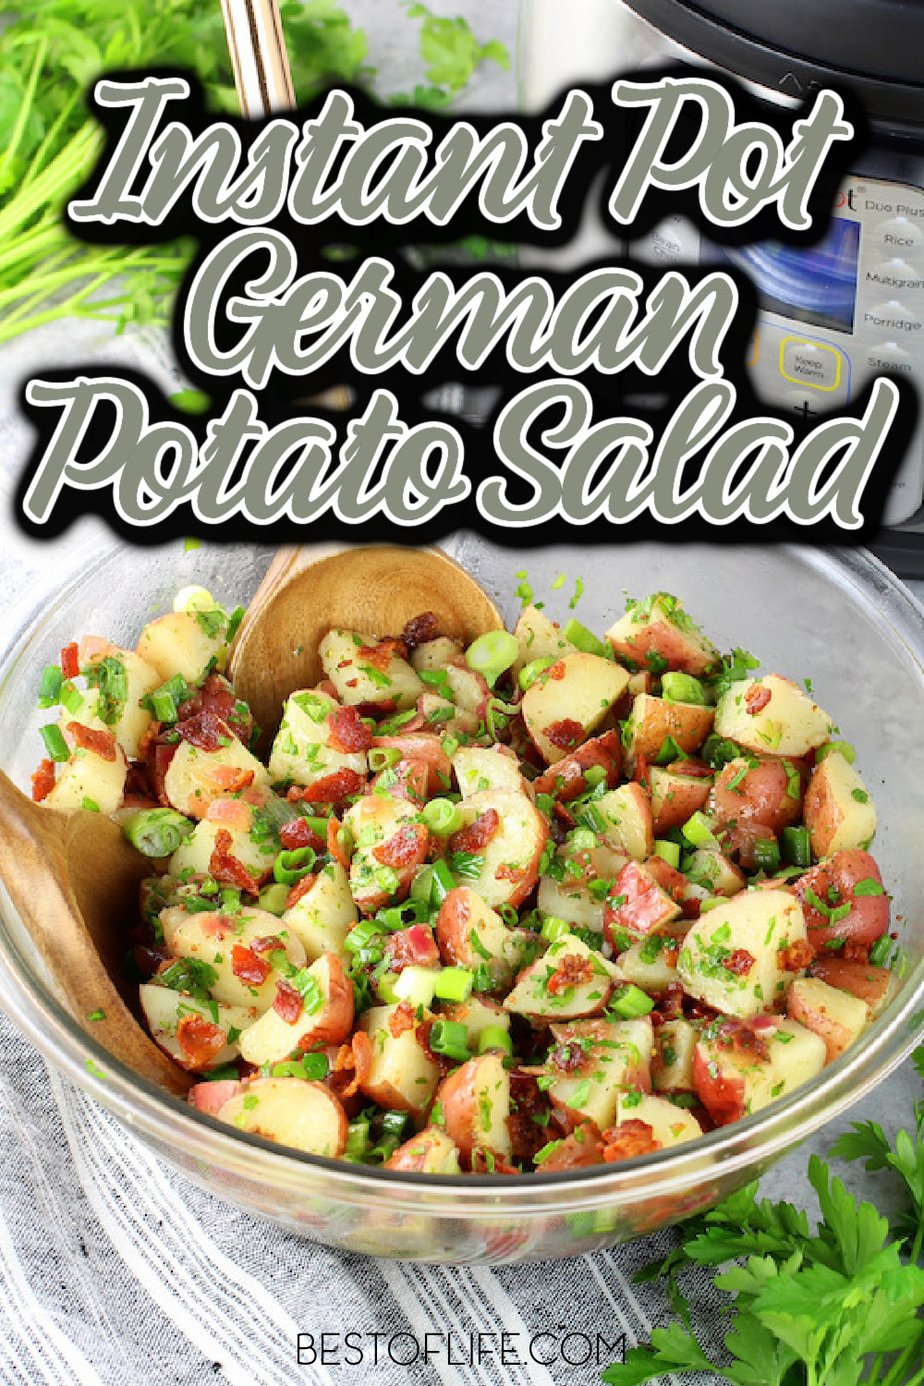 You can use Instant Pot German potato salad recipes to experience the popular Instant Pot summer side dish in a whole new way. Instant Pot Potato Salad   Instant Pot Potato Salad with Red Potatoes   Instant Pot Potato Salad with Dill   Pressure Cooker German Potato Salad   Low Sodium German Potato Salad   Instant Pot Recipes with Potatoes   Potato Recipes for Summer   BBQ Party Recipes   Family Dinner Ideas #instantpotrecipes #easyrecipes via @thebestoflife